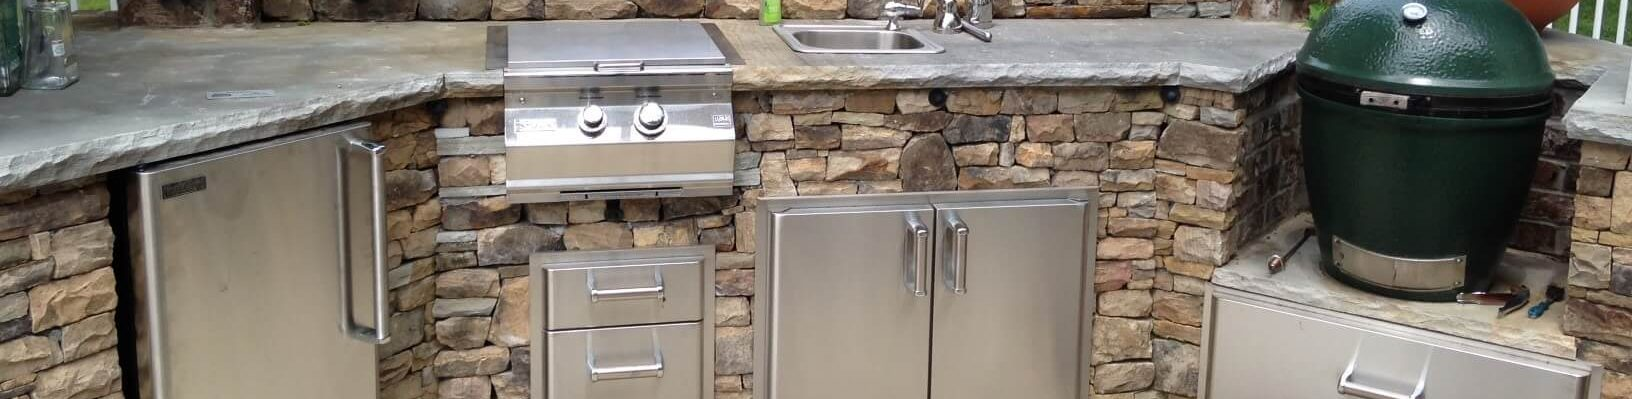 midtown houston home appliance repair Services.